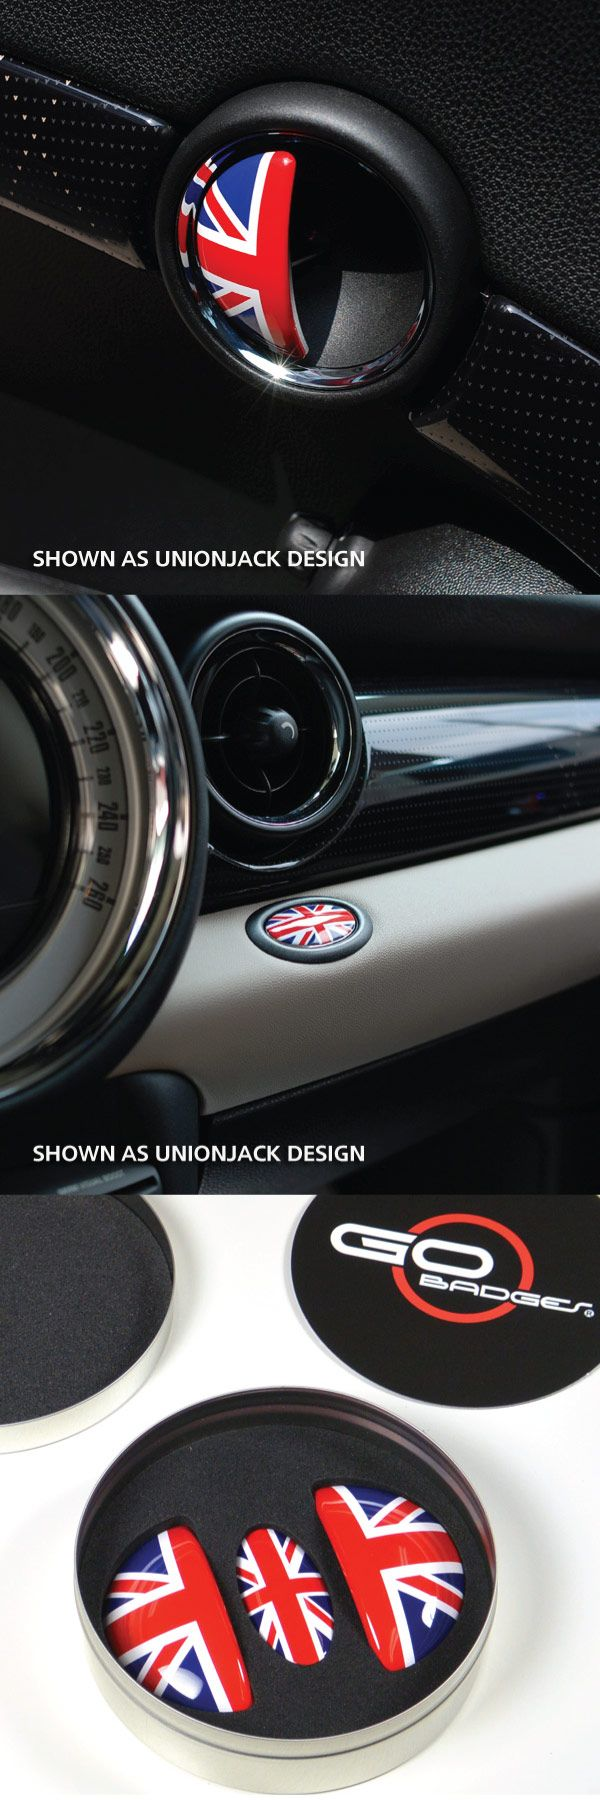 MINI COOPER R55,56,57,58,59 DOOR PULL AND GLOVE BOX CAP - UNIONJACK  Sometimes the smallest details can make all the difference between ordinary and cool! Let our door pull caps be a constant reminder for you and your guests why you love your MINI. They fit like a glove for all Gen 2 mini cooper models and install in minutes with 3M double stick tape. Available in Union Jack, Black Jack or Checker designs.